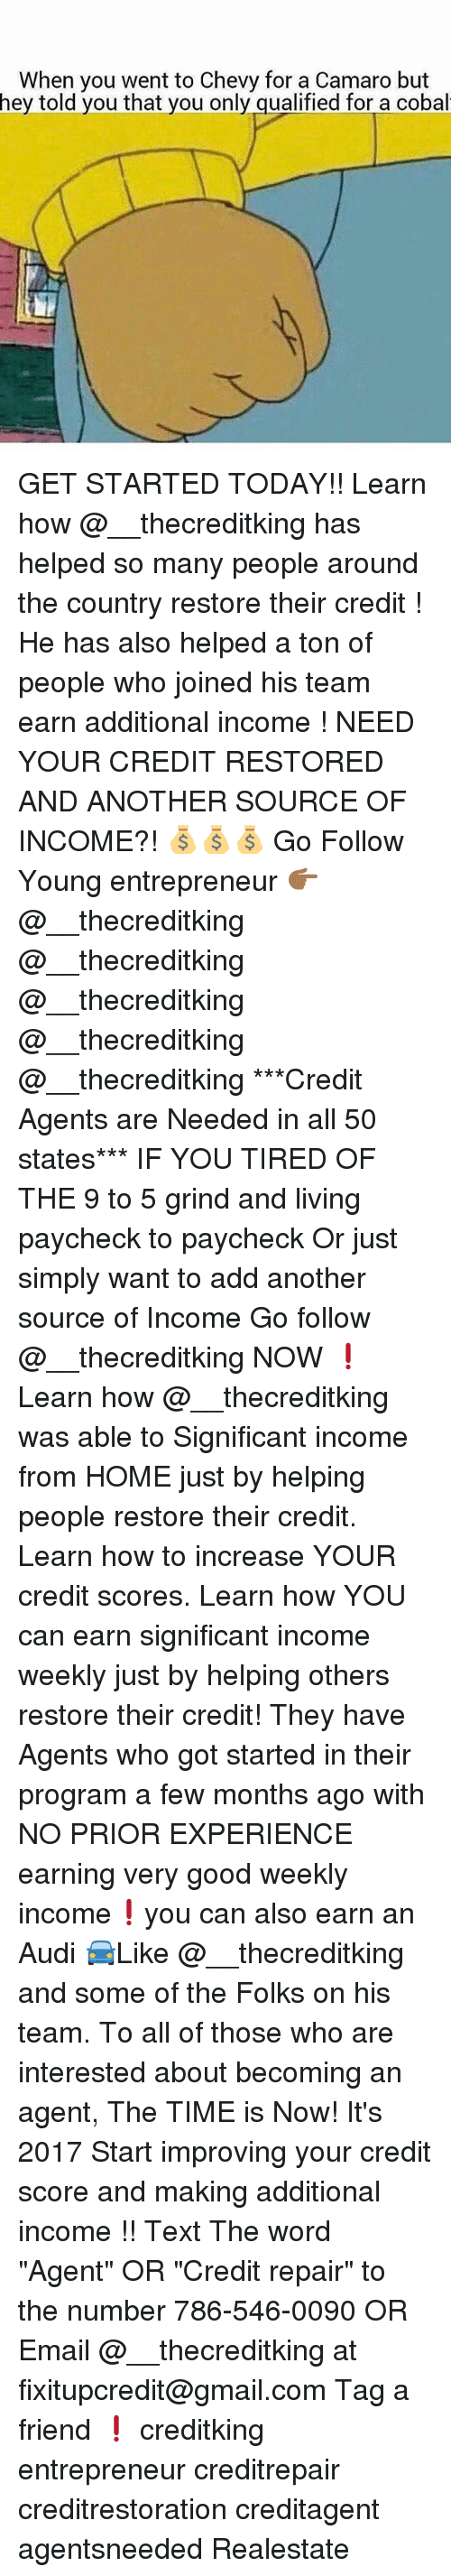 """Memes, 🤖, and Add: When you went to Chevy for a Camaro but  hey told you that you only qualified for a cobal GET STARTED TODAY!! Learn how @__thecreditking has helped so many people around the country restore their credit ! He has also helped a ton of people who joined his team earn additional income ! NEED YOUR CREDIT RESTORED AND ANOTHER SOURCE OF INCOME?! 💰💰💰 Go Follow Young entrepreneur 👉🏾@__thecreditking @__thecreditking @__thecreditking @__thecreditking @__thecreditking ***Credit Agents are Needed in all 50 states*** IF YOU TIRED OF THE 9 to 5 grind and living paycheck to paycheck Or just simply want to add another source of Income Go follow @__thecreditking NOW ❗️Learn how @__thecreditking was able to Significant income from HOME just by helping people restore their credit. Learn how to increase YOUR credit scores. Learn how YOU can earn significant income weekly just by helping others restore their credit! They have Agents who got started in their program a few months ago with NO PRIOR EXPERIENCE earning very good weekly income❗️you can also earn an Audi 🚘Like @__thecreditking and some of the Folks on his team. To all of those who are interested about becoming an agent, The TIME is Now! It's 2017 Start improving your credit score and making additional income !! Text The word """"Agent"""" OR """"Credit repair"""" to the number 786-546-0090 OR Email @__thecreditking at fixitupcredit@gmail.com Tag a friend ❗️ creditking entrepreneur creditrepair creditrestoration creditagent agentsneeded Realestate"""